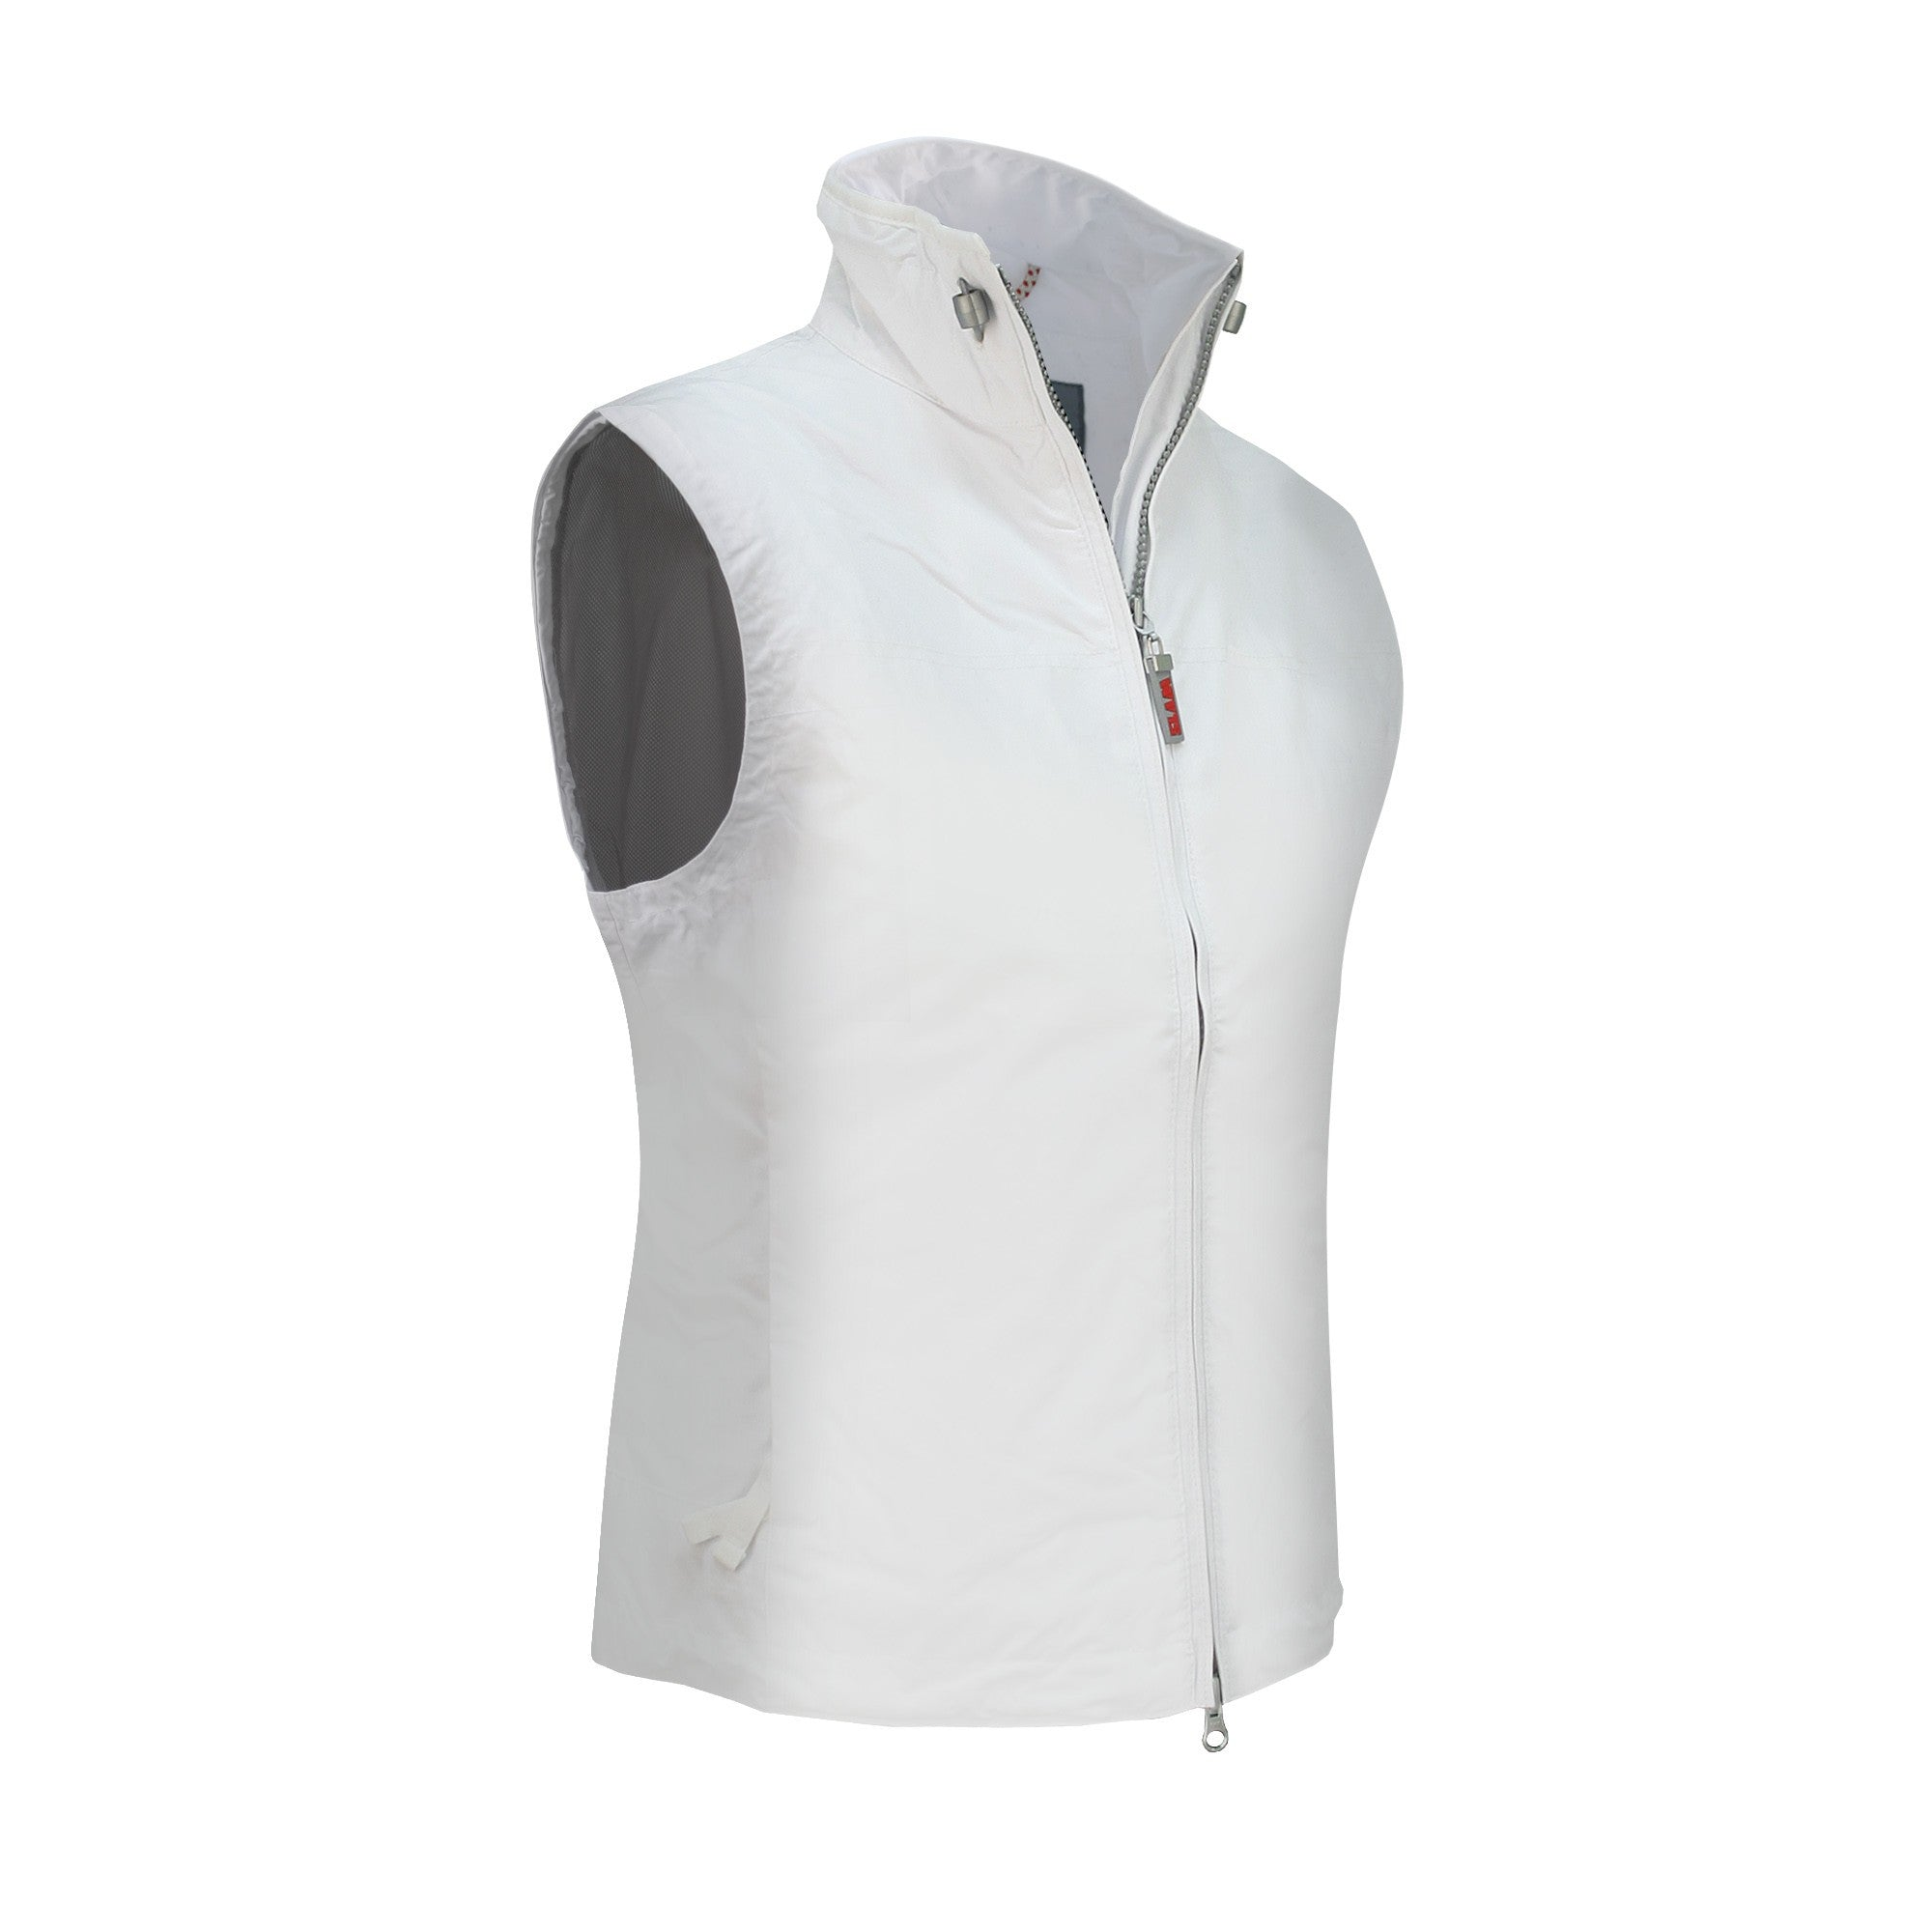 Slam Ladies Summer Vest - White